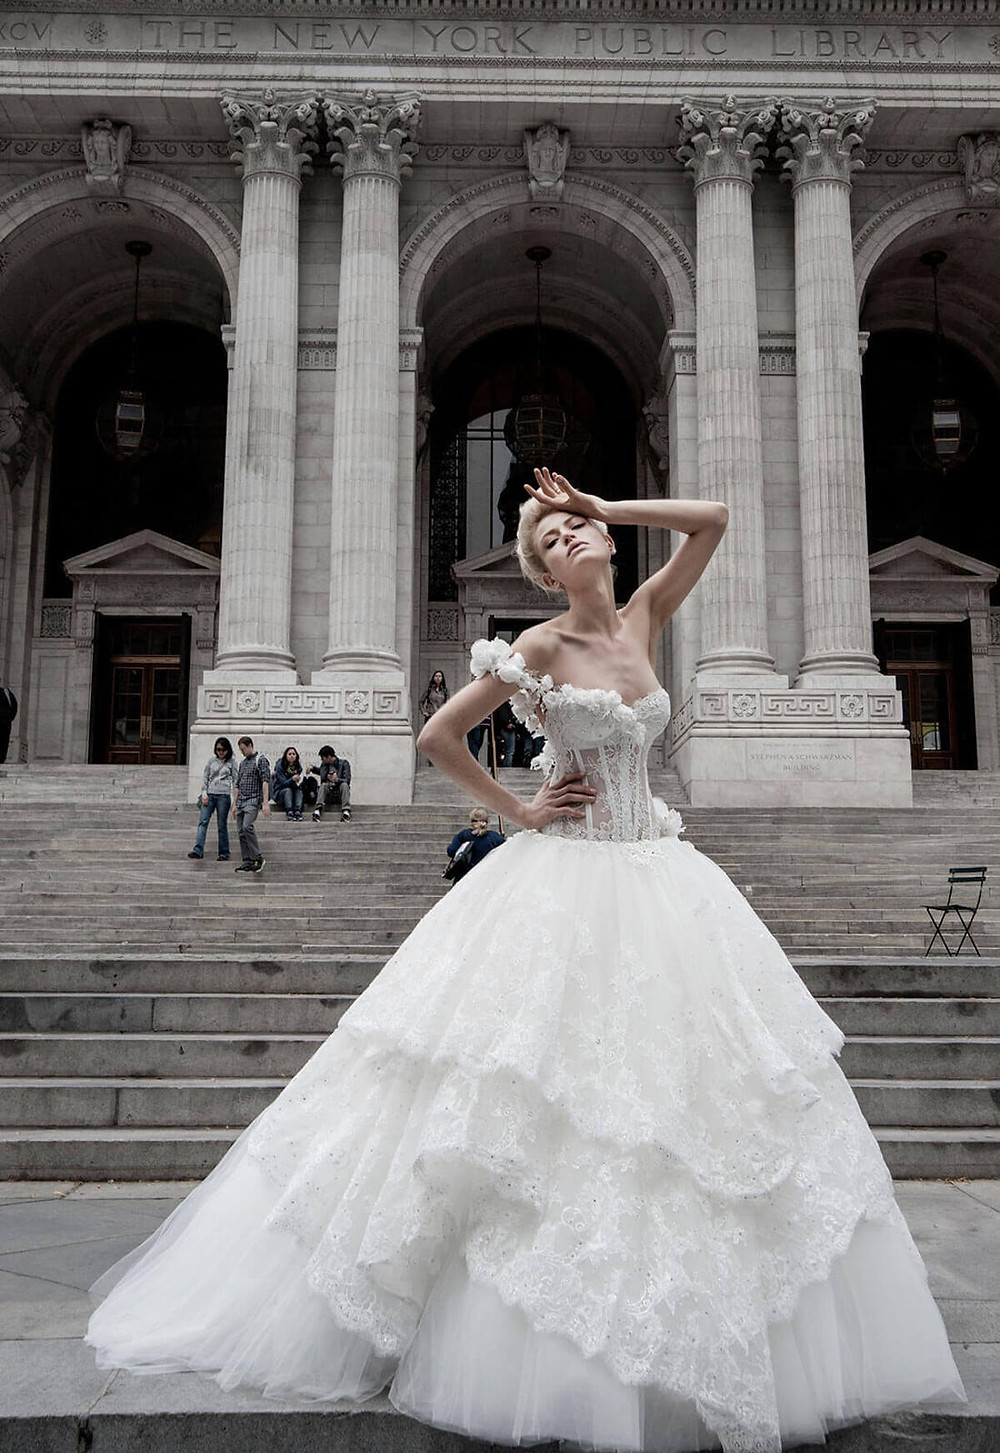 A Pnina Tornai one shoulder, ball gown wedding dress, with a corset and a large lace skirt